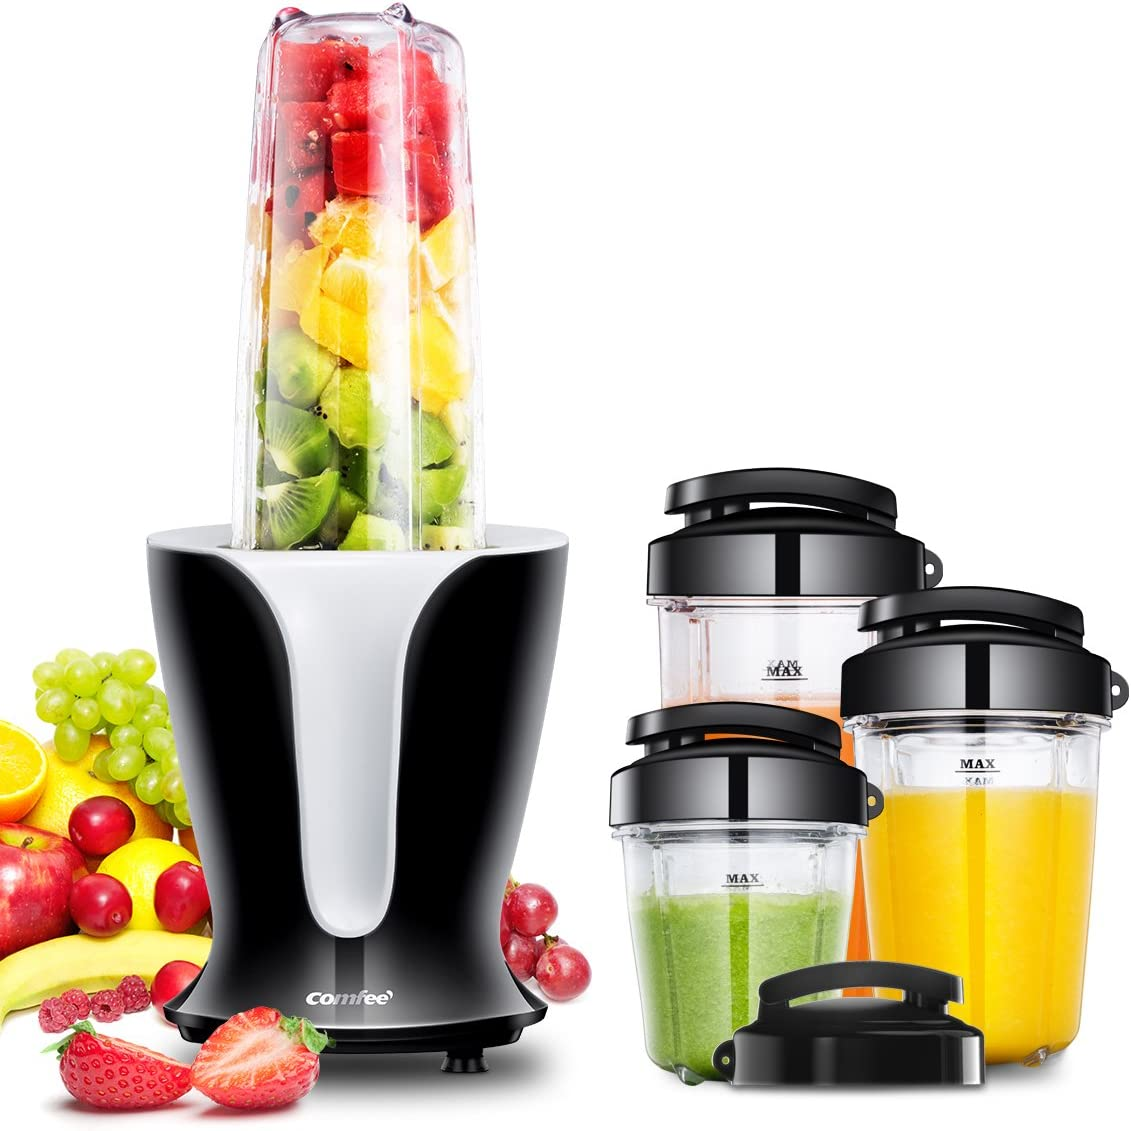 Comfee BL1191 Personal Blender Set, 10 Piece - CBS BAHAMAS LTD